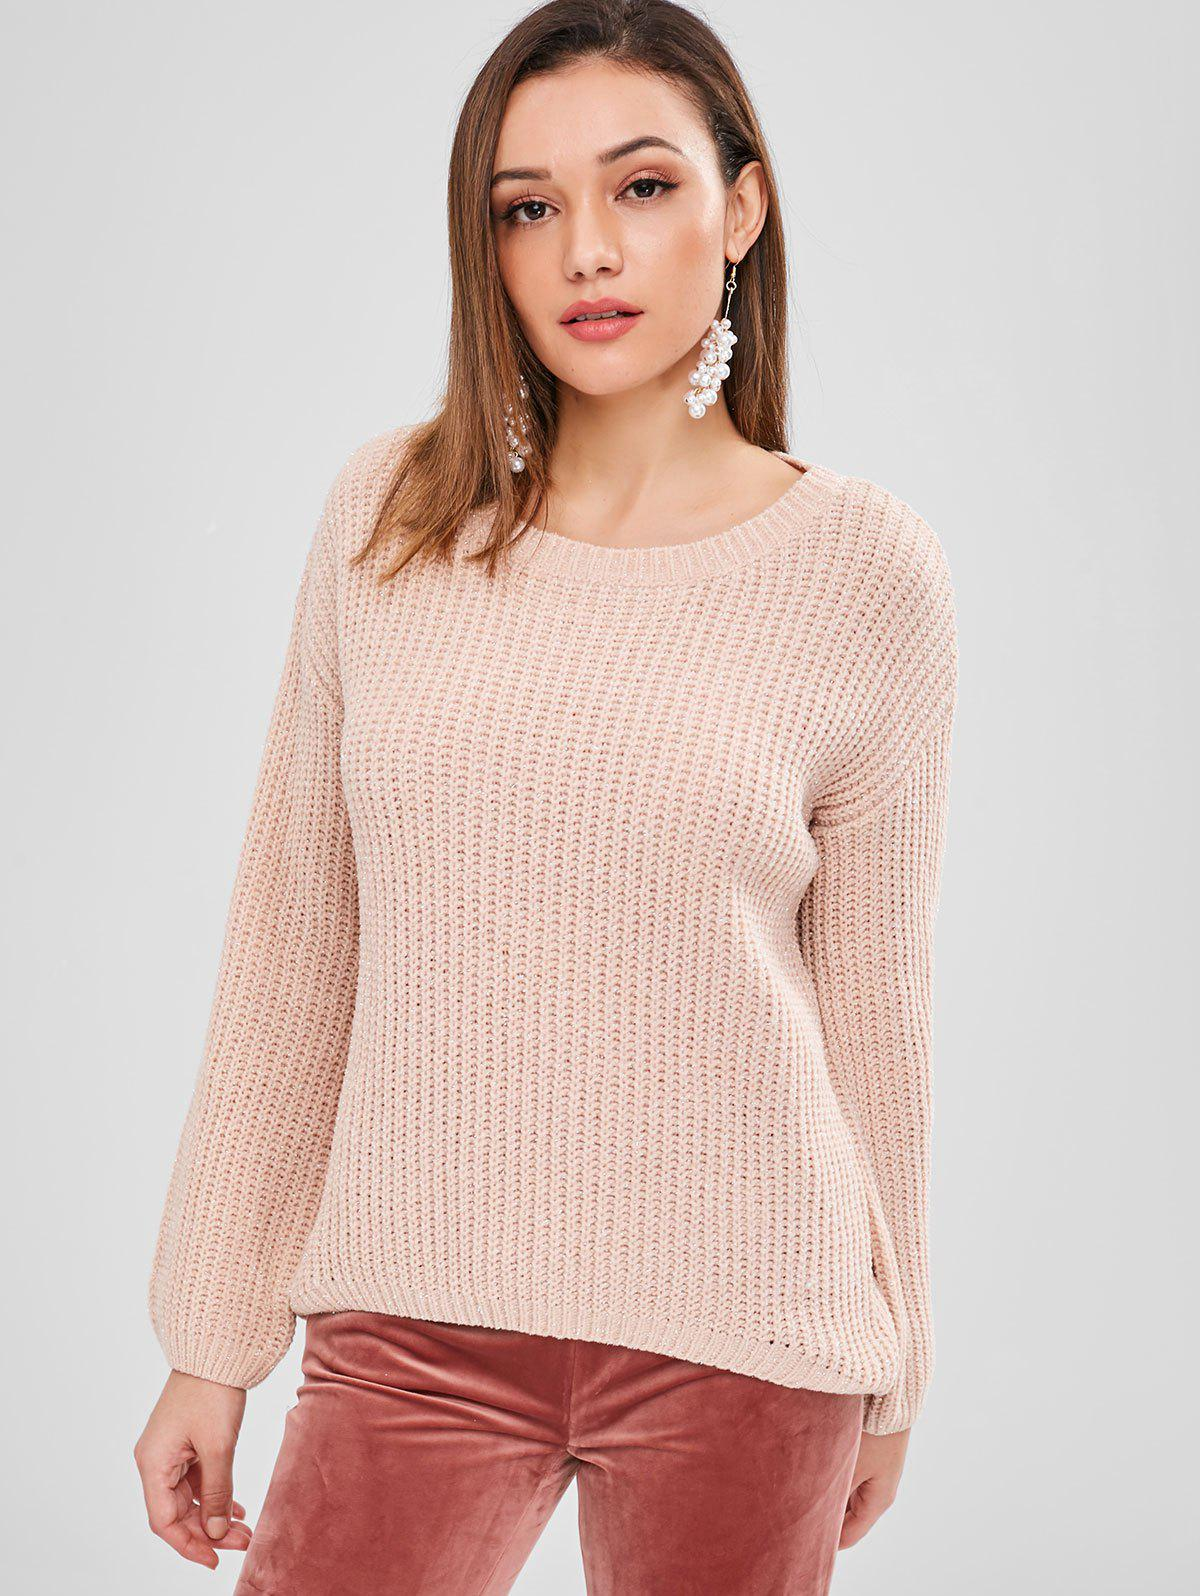 ZAFUL High Low Shiny Thread Sweater